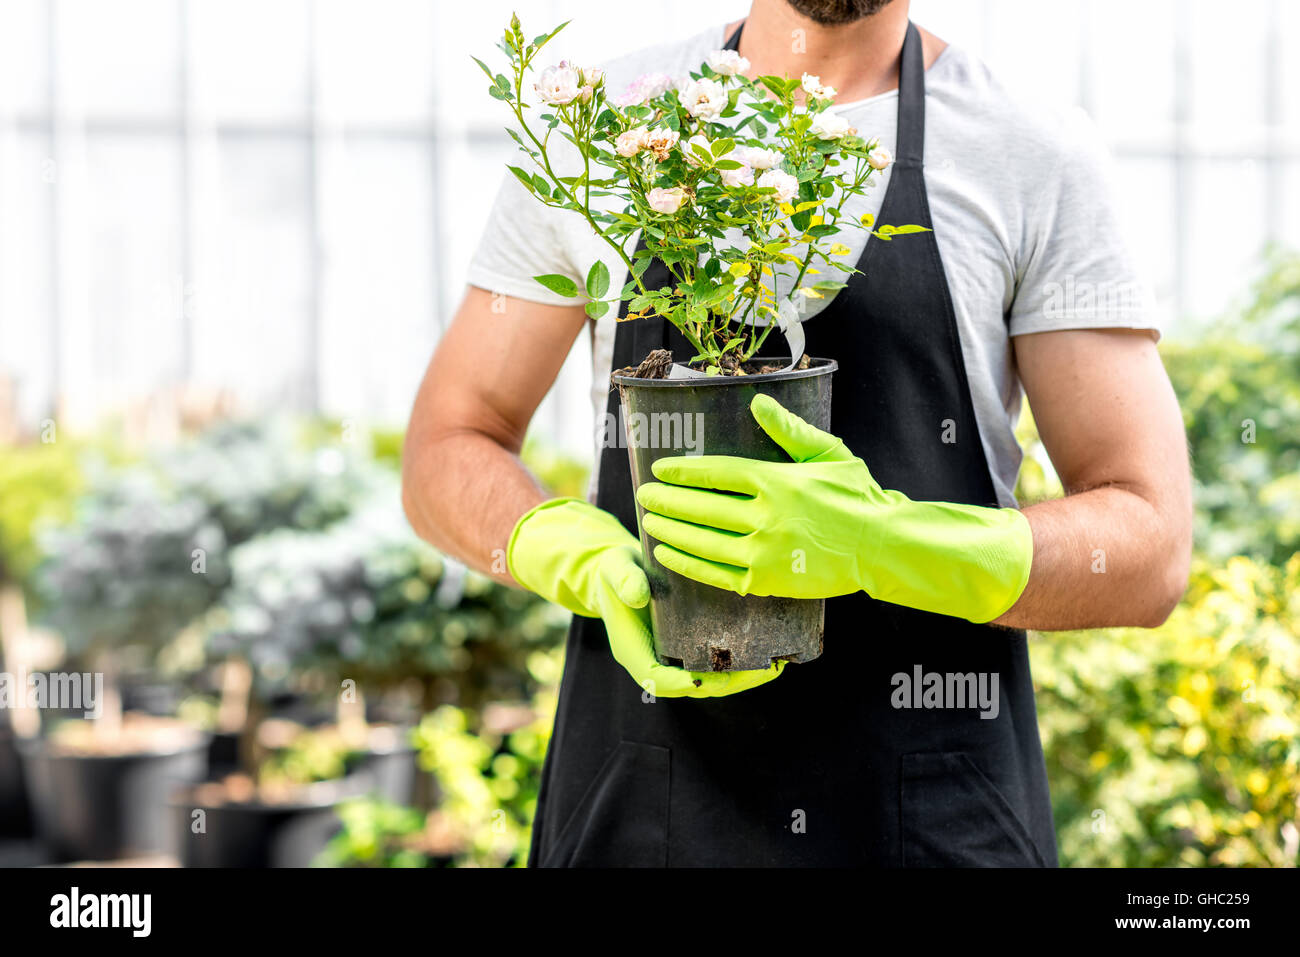 Gardener with a flowerpot - Stock Image